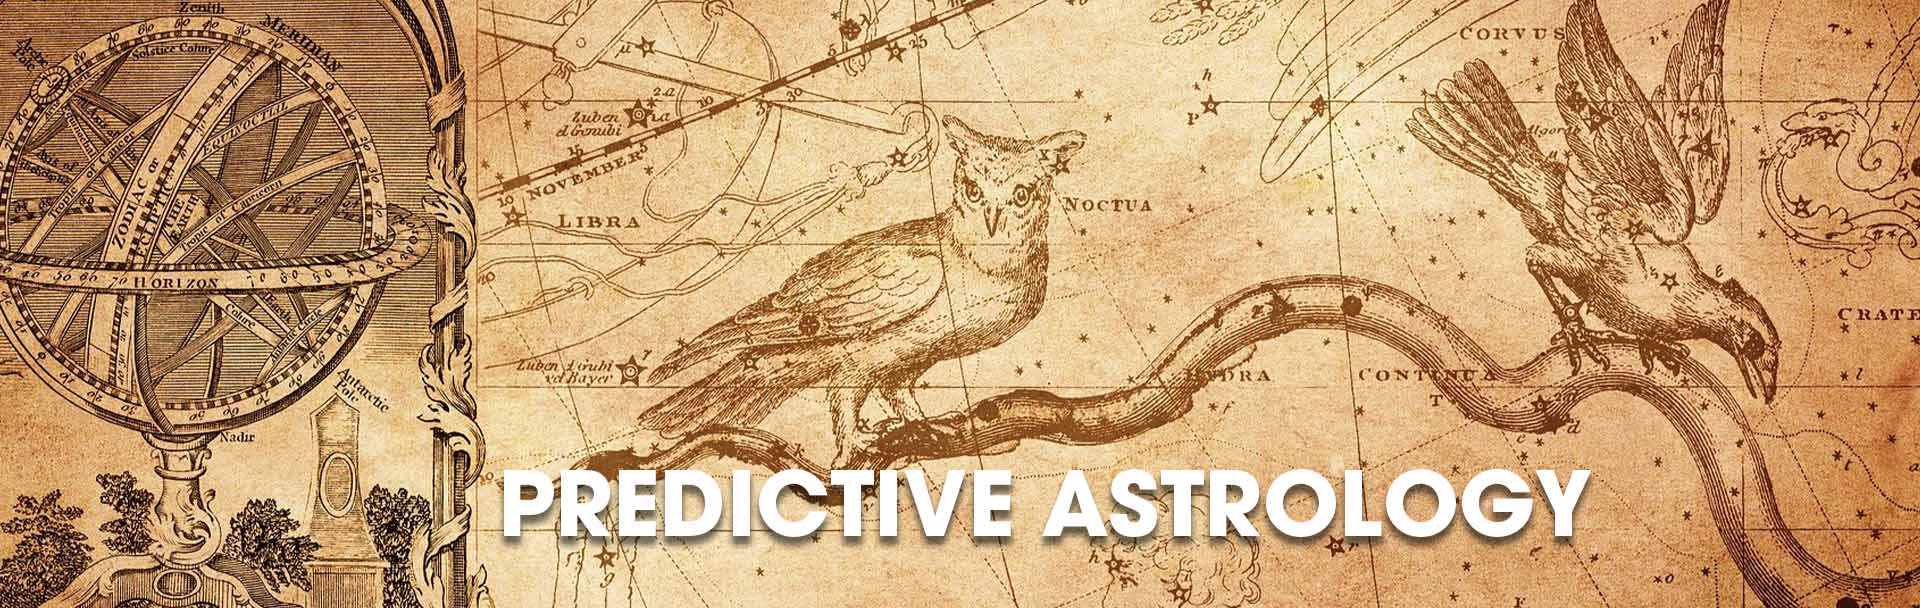 Kat Wojdyla leads a Predictive Astrology Masterclass via ZOO at the Sir Arthur Conan Doyle Centre